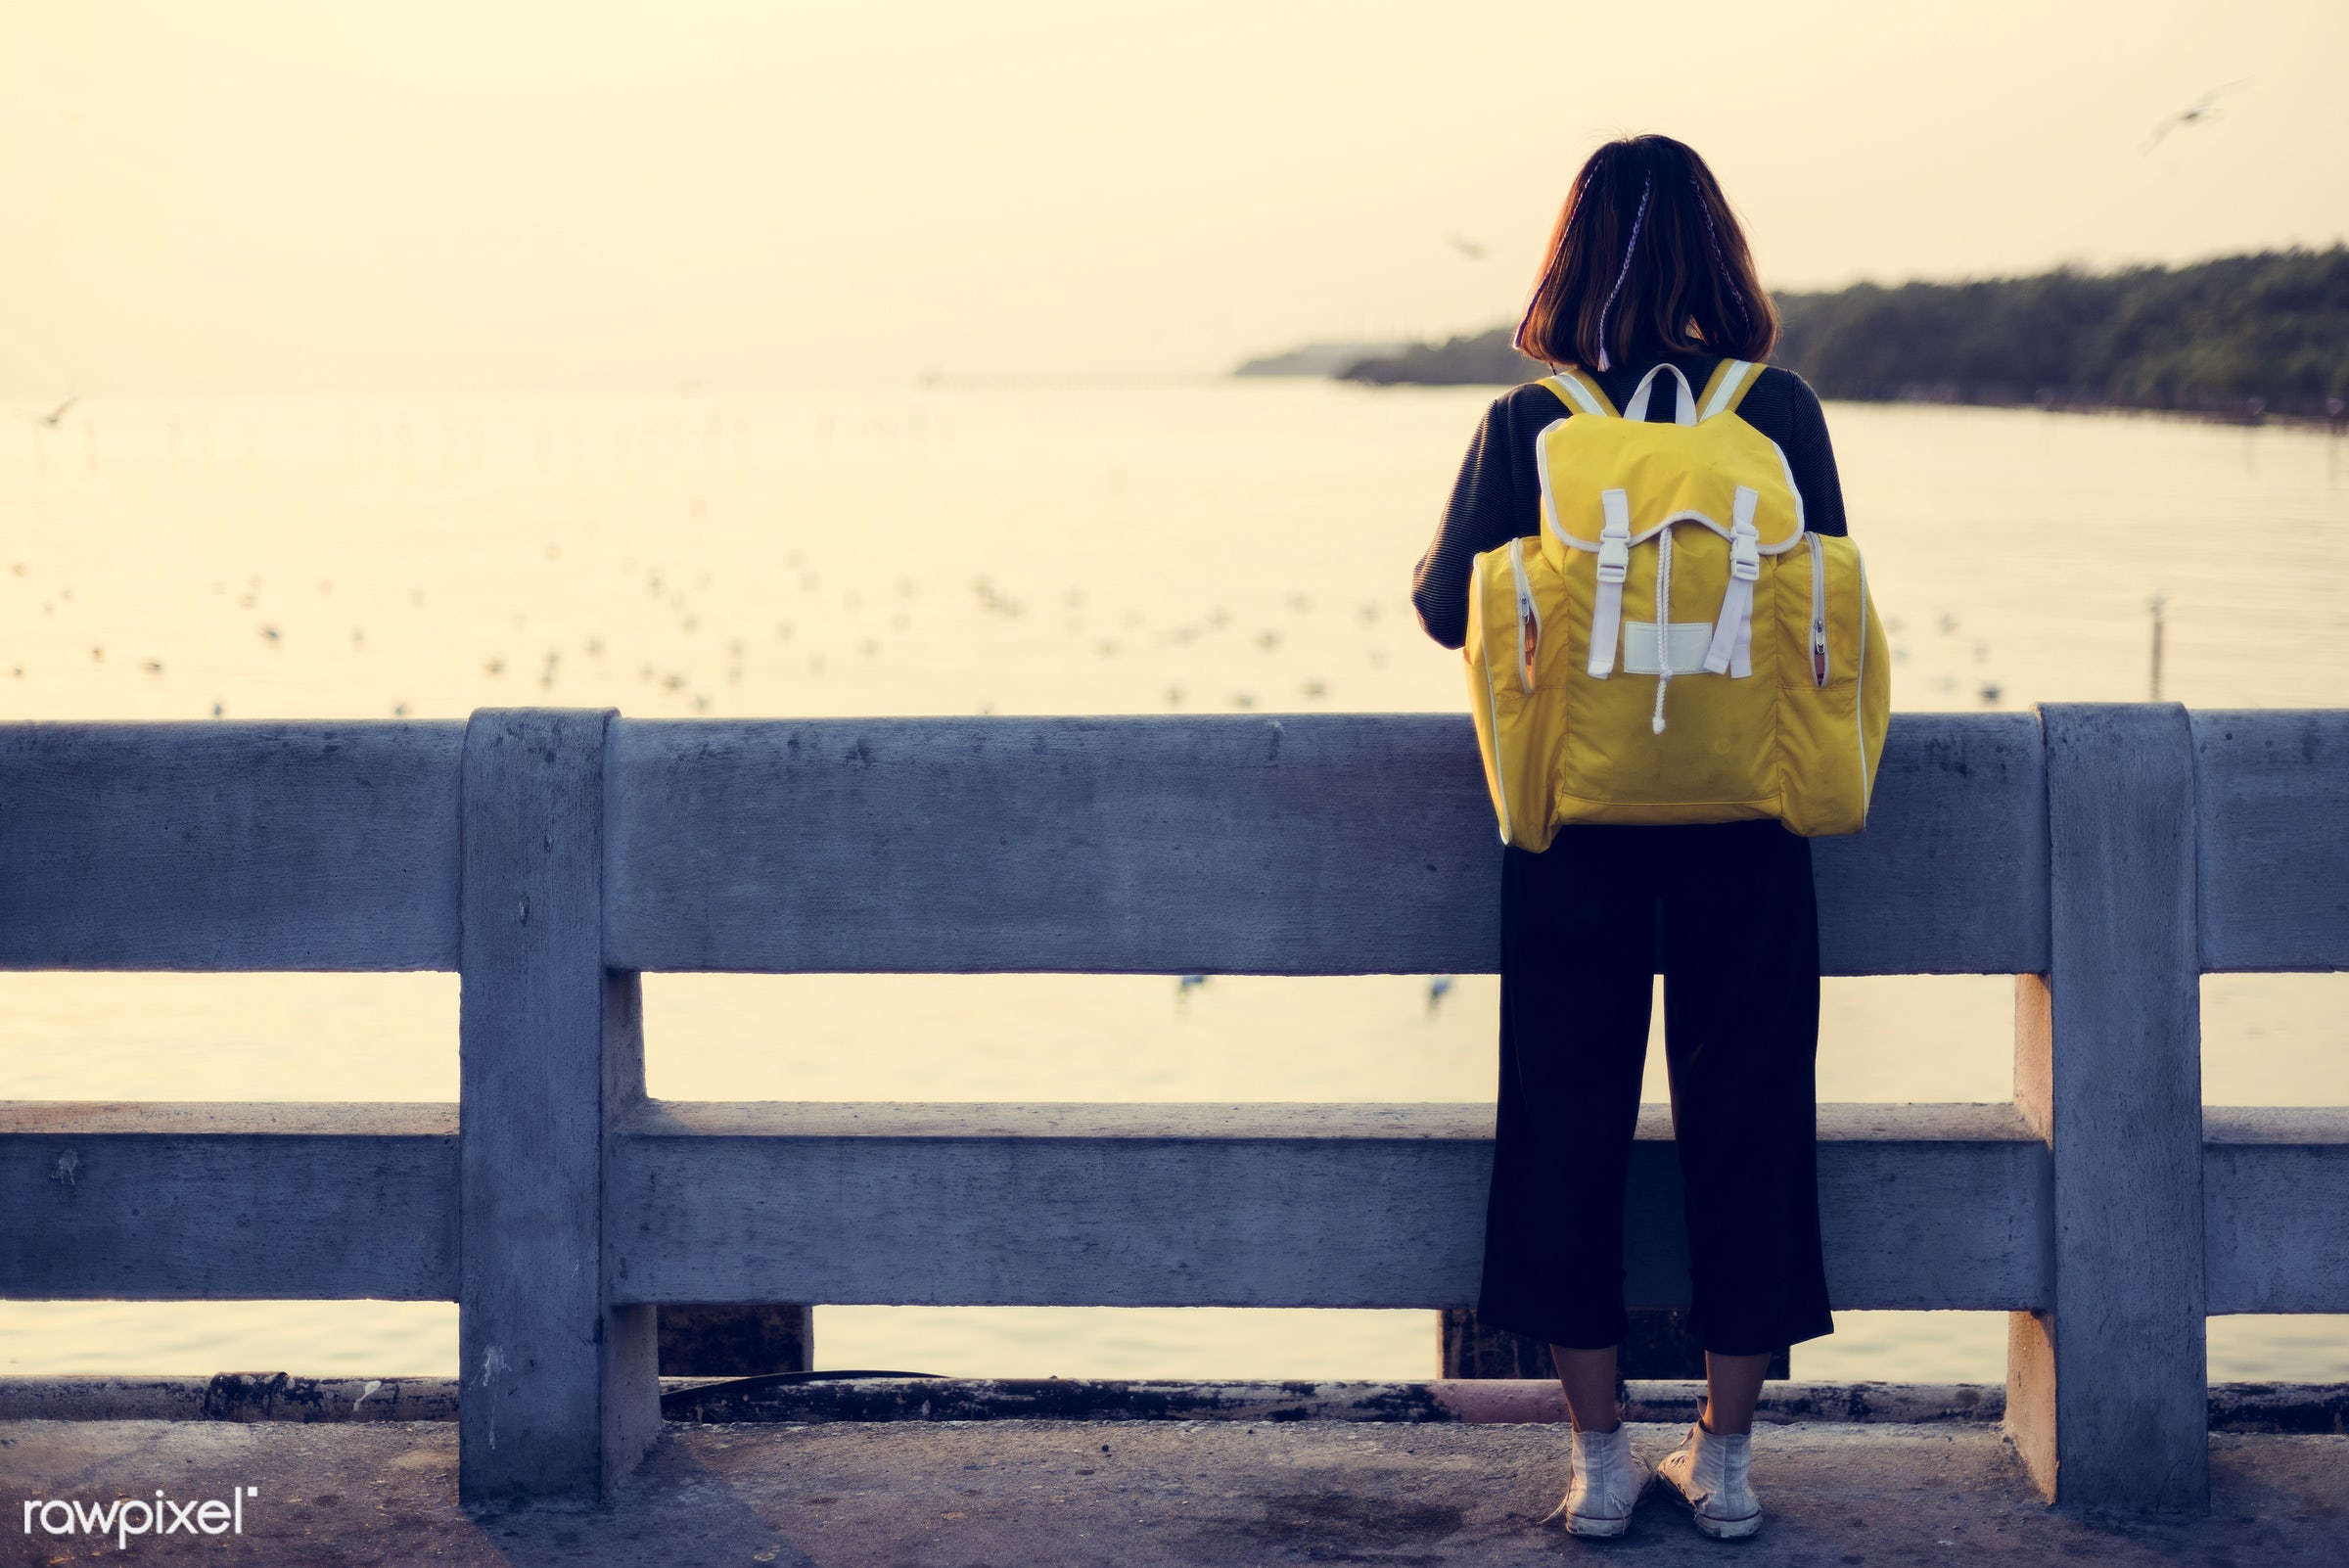 person, asian, nature, solo, woman, alone, outdoors, girl, backpack, bag, trip, wanderlust, travel, solitude, relaxing,...